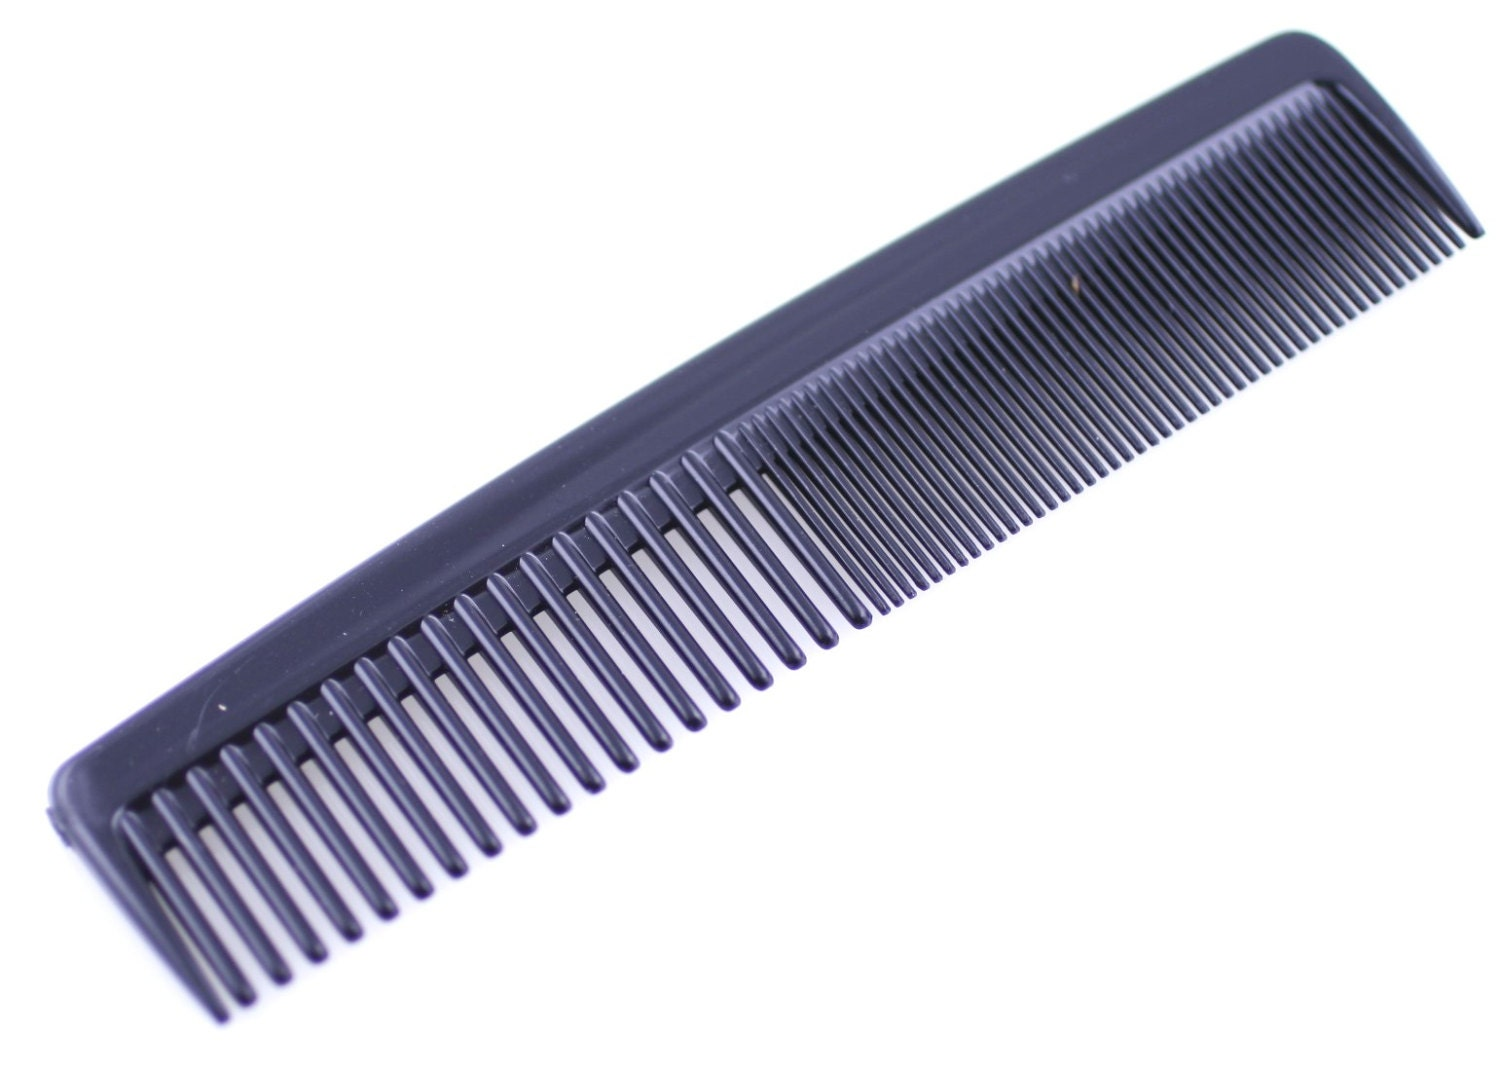 1 Piece Hard Rubber Hair Comb Pick A By Fashionlovestudio